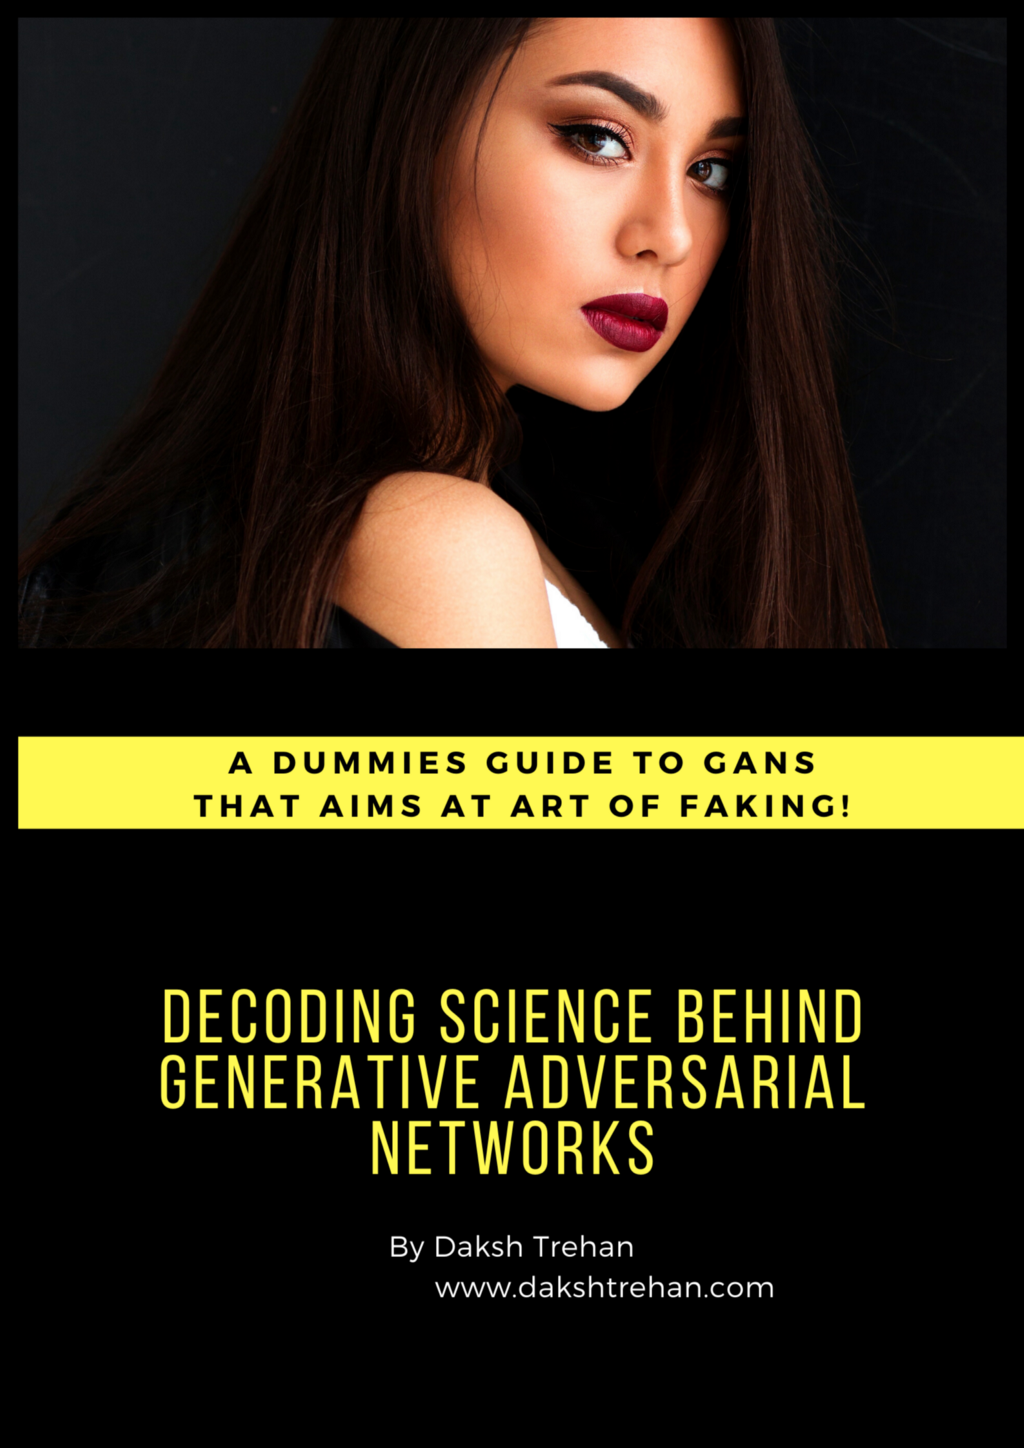 Decoding the Science Behind Generative Adversarial Networks